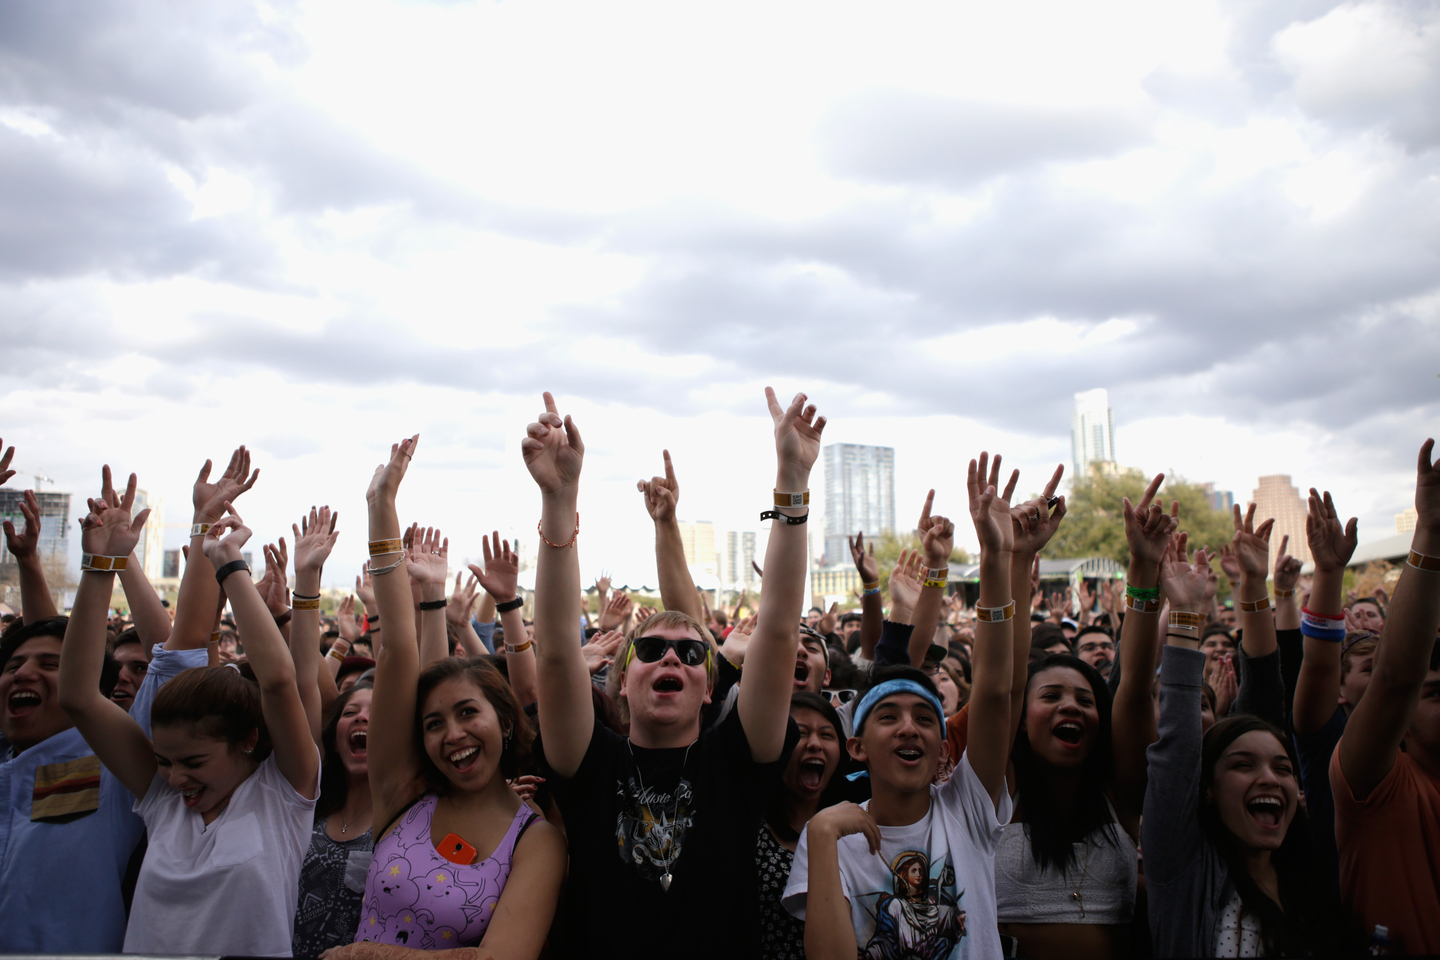 Outdoor Stage, 2014. Photo by Dustin Finkelstein/Getty Images for SXSW